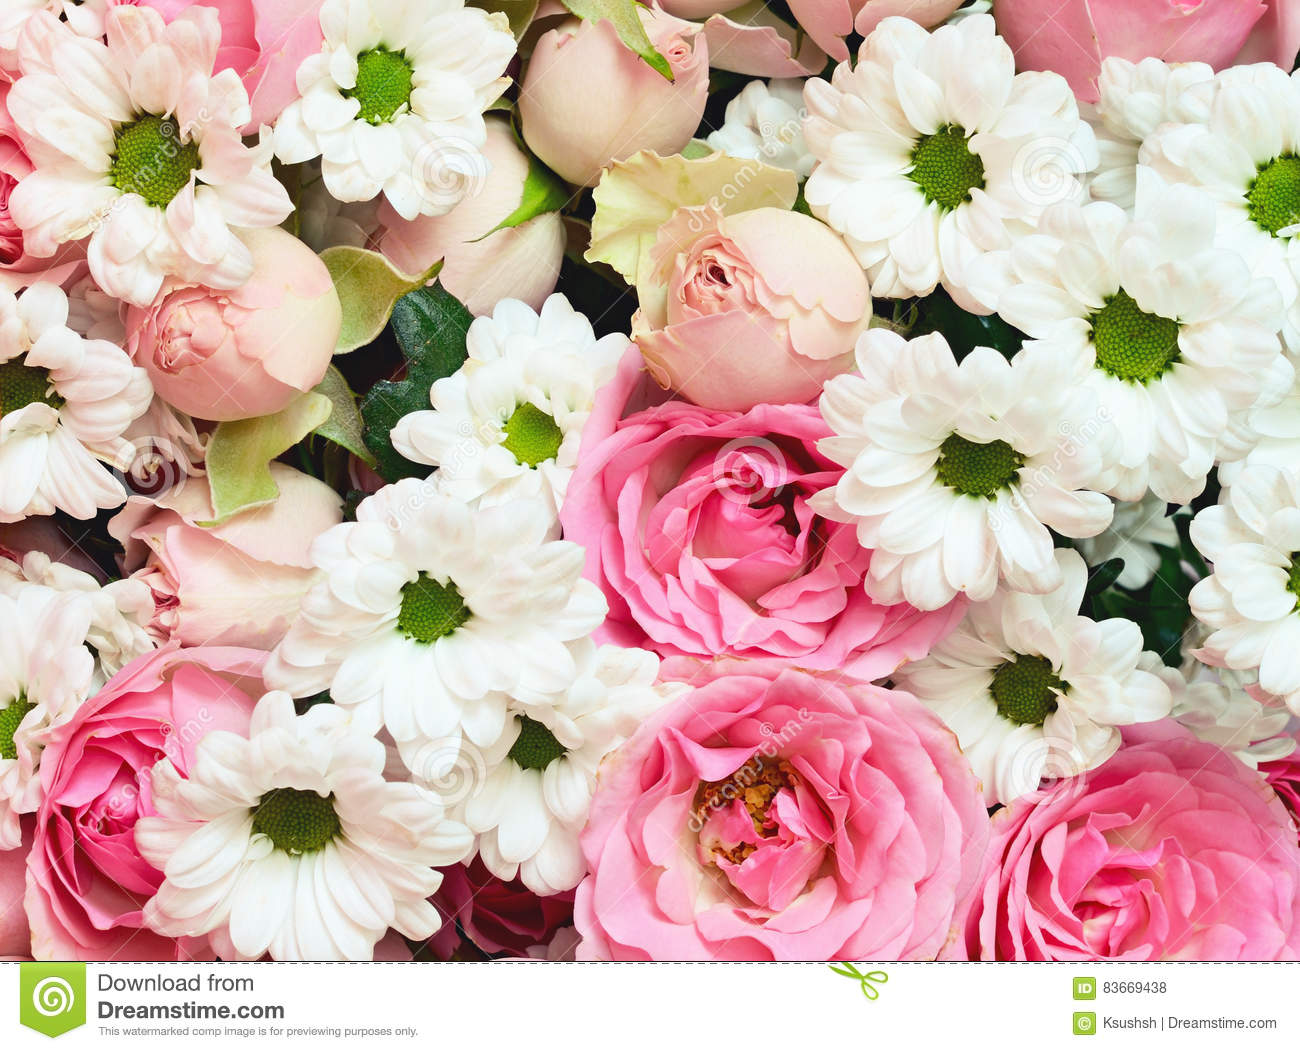 Pink Roses And White Daisy Flowers Bouquet Stock Photo Image Of